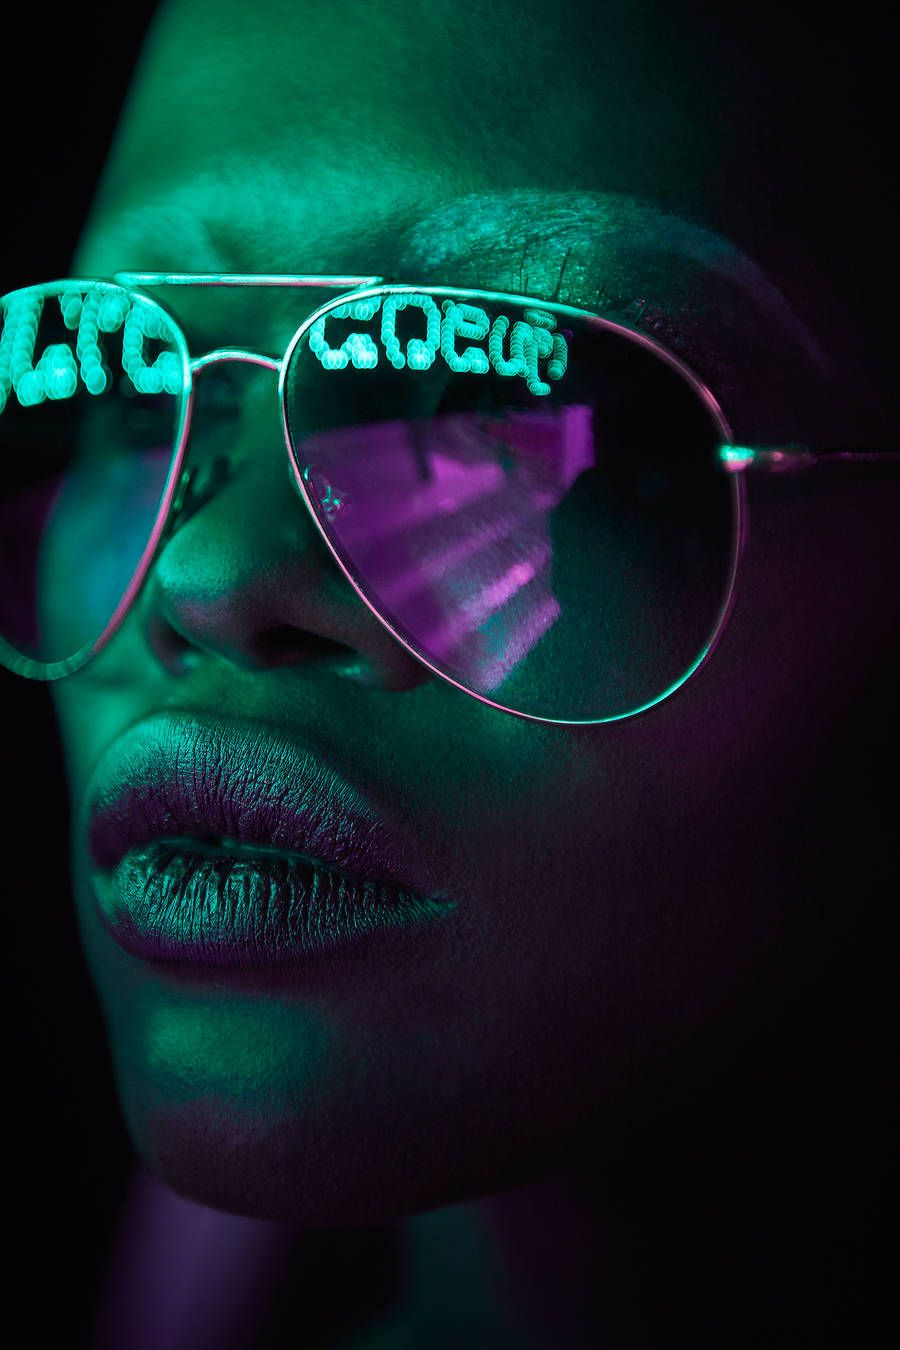 Neon Light Portrait On Behance: Pop Portraits With Neon Light Reflected In Sunglasses